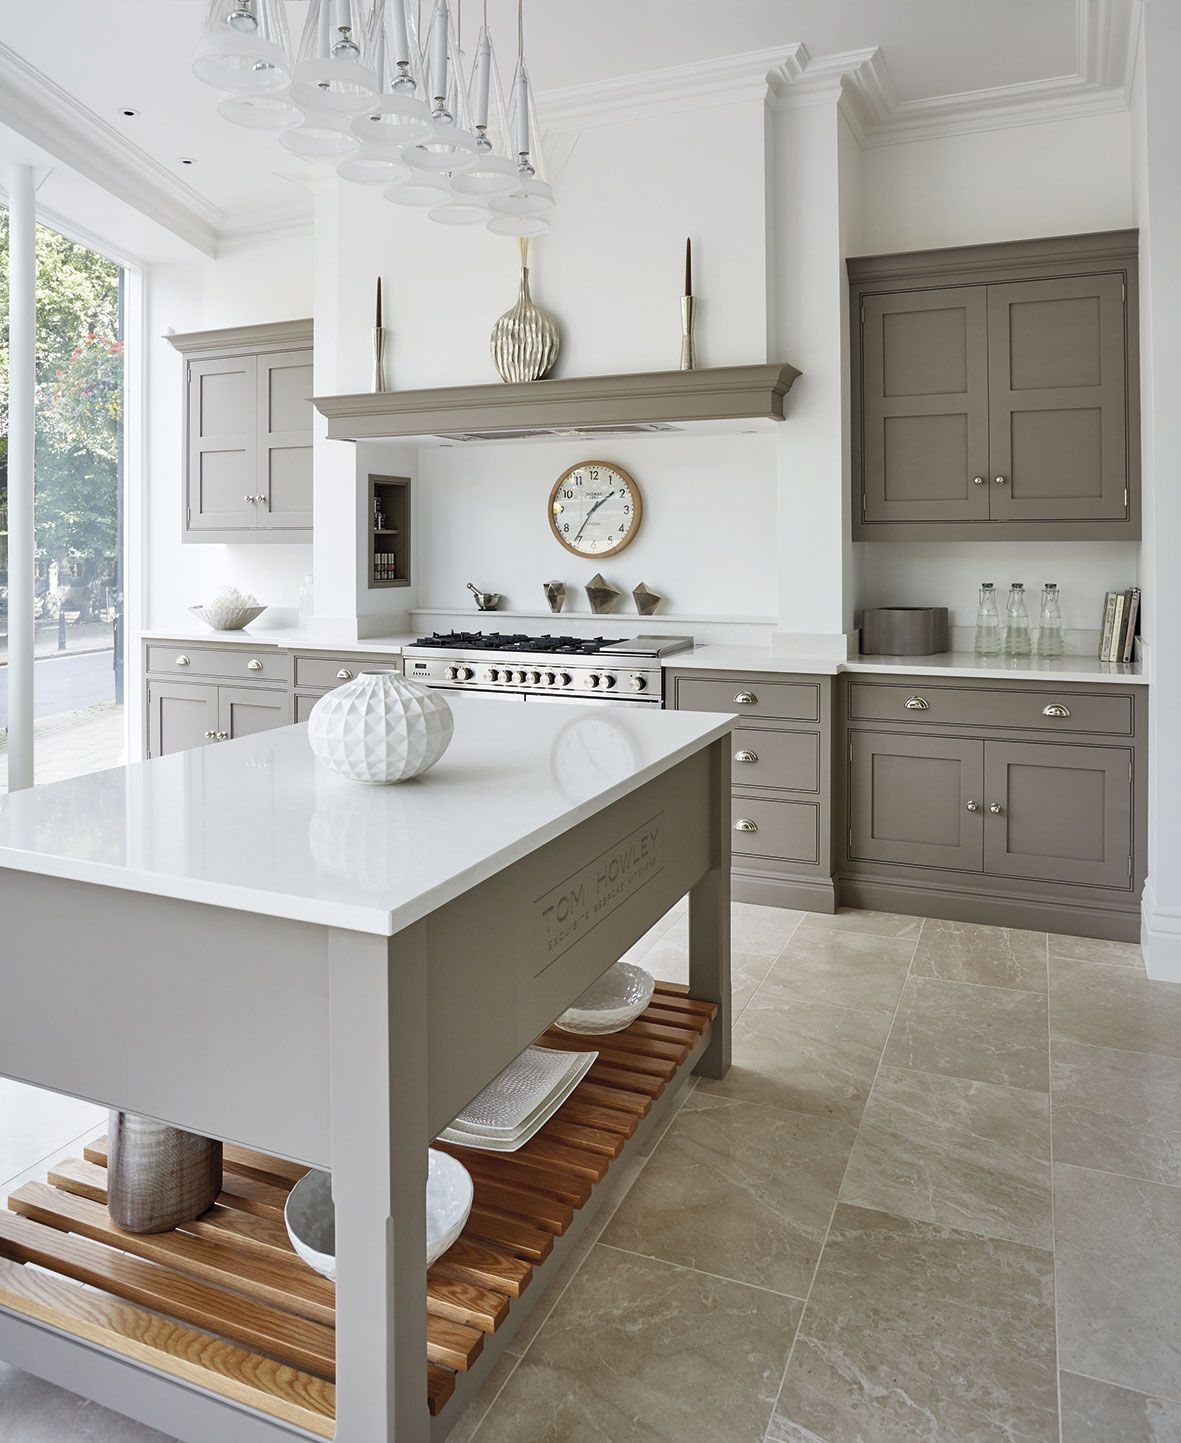 New Kitchen Idea Floors Here Tom Howley New Harrogate Showroom Kitchen